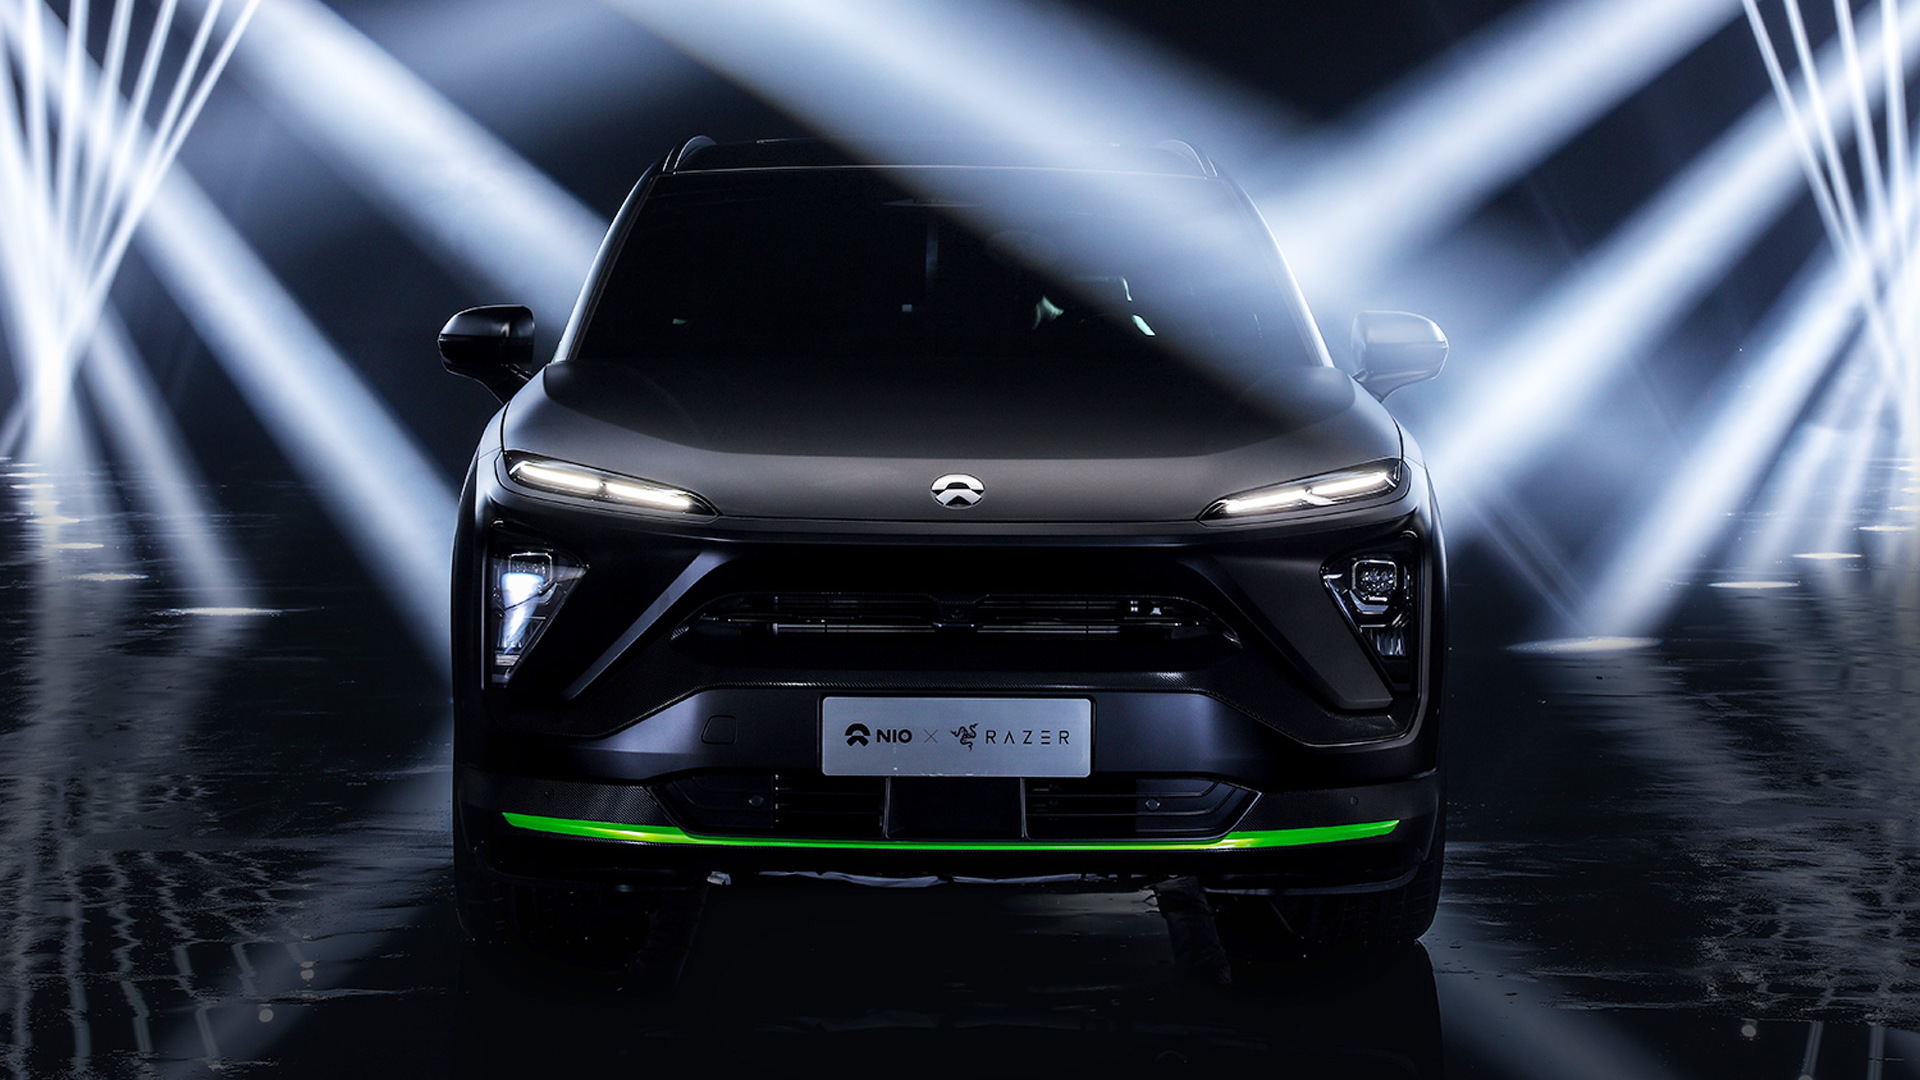 2019 Nio ES6 Razer Night Explorer